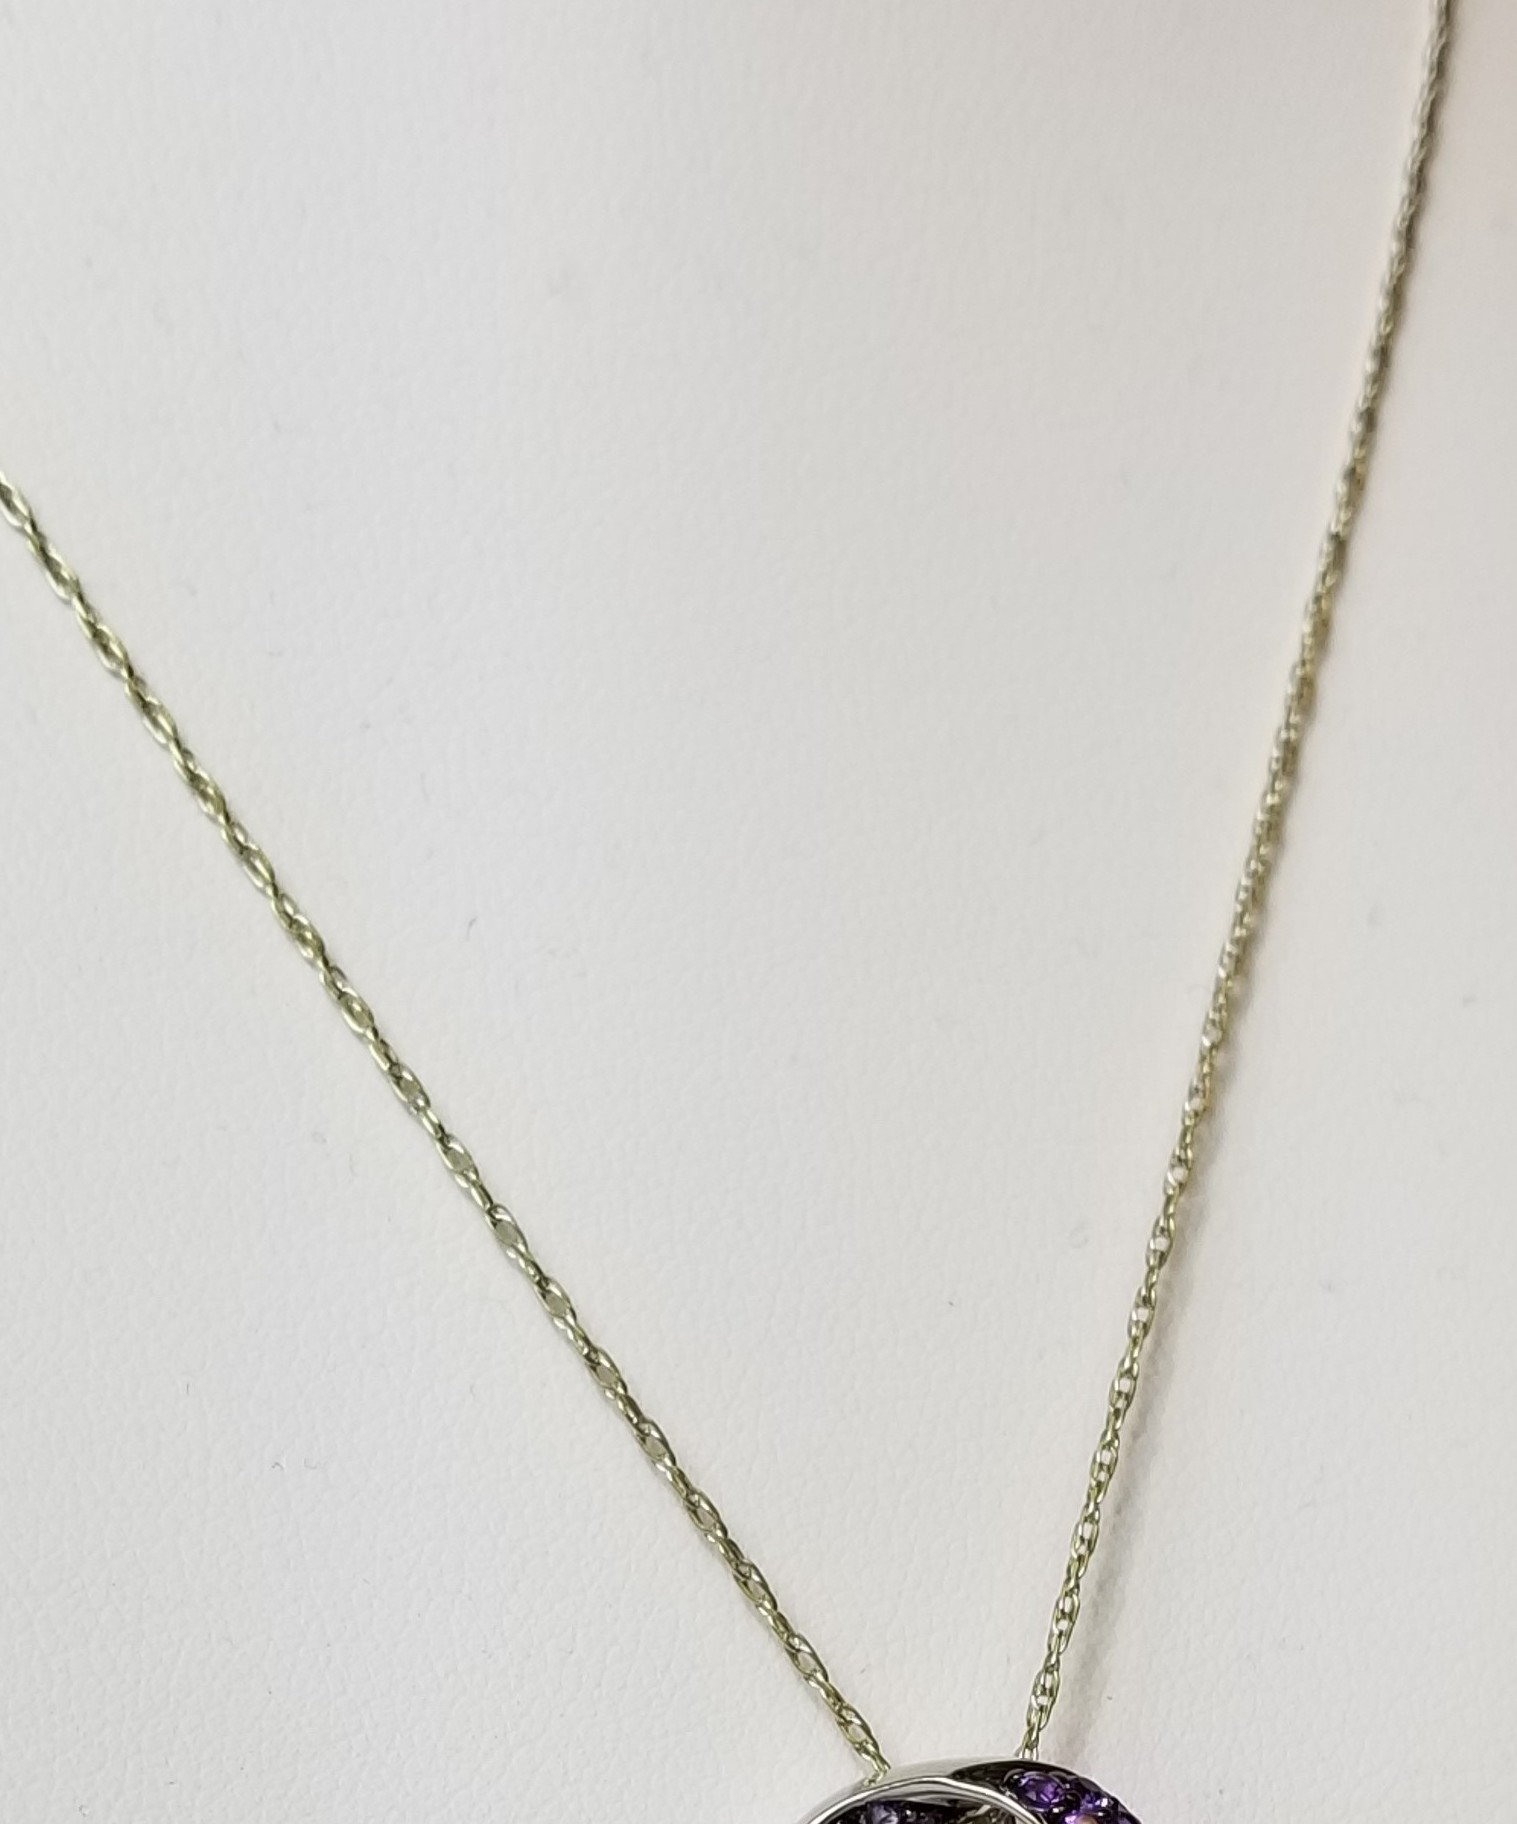 Double Link Chain 14K White Gold 1.3g